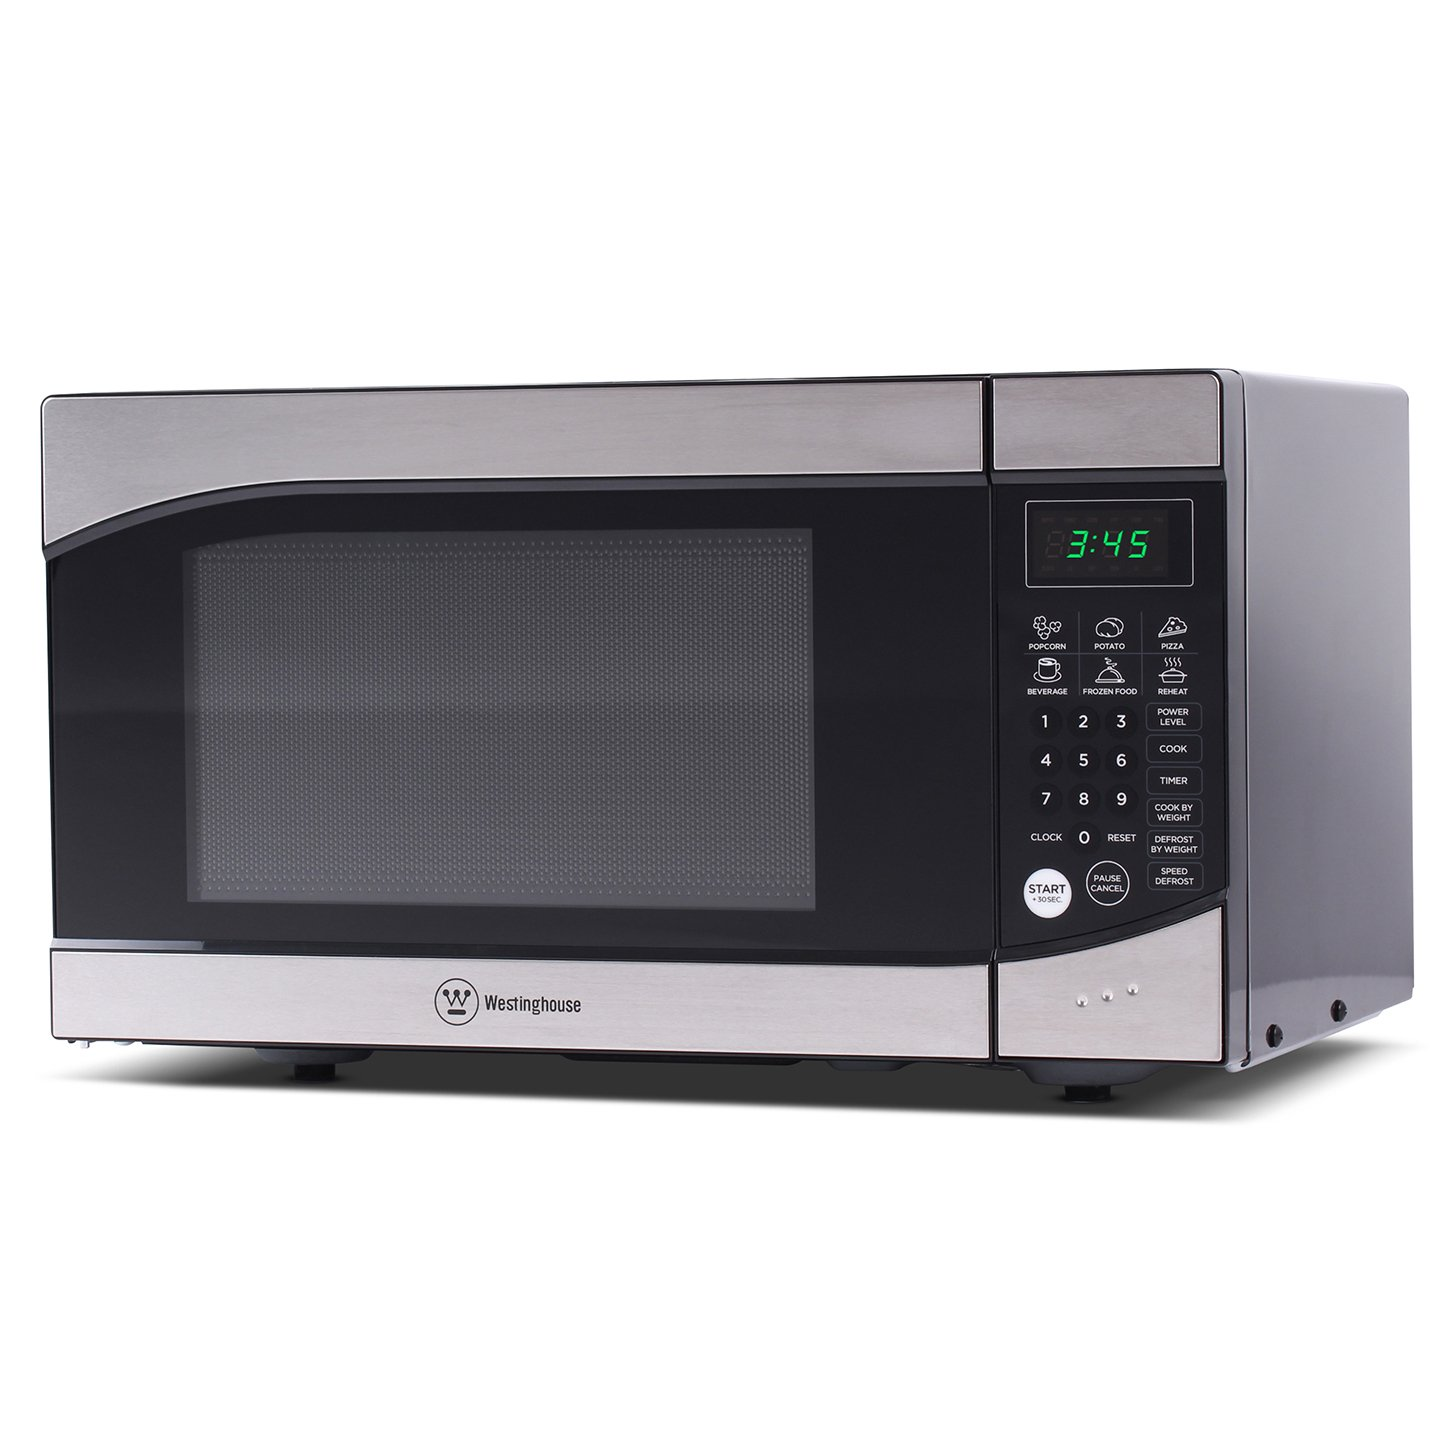 Westinghouse WM009 Counter Top Microwave Oven